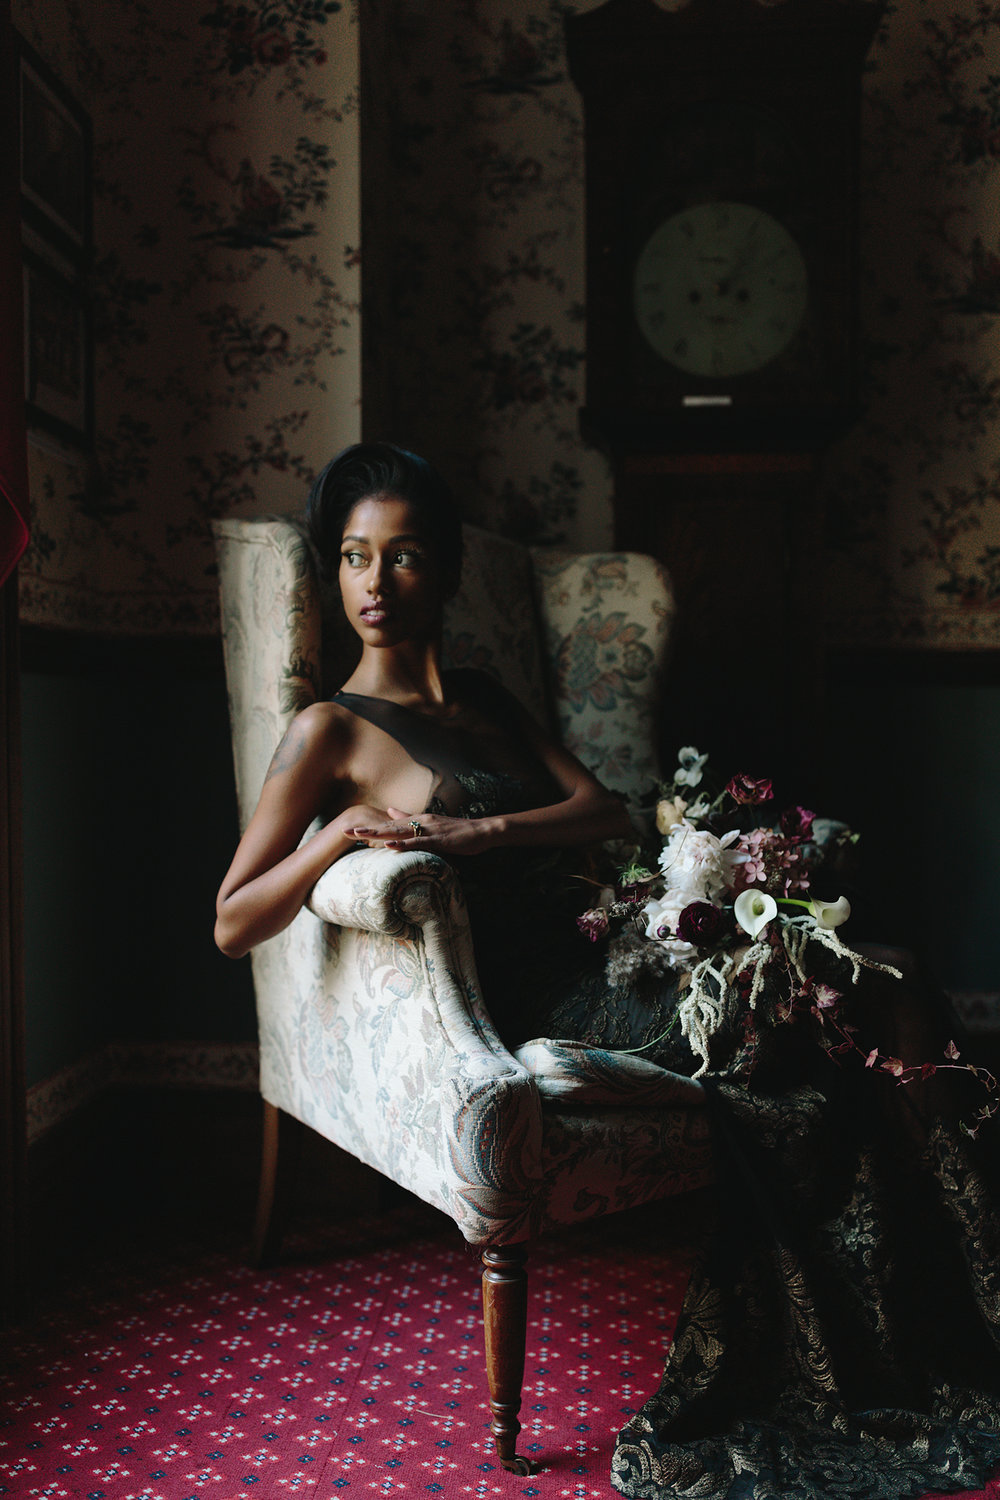 ryanne-hollies-photography-campbell-house-stylized-shoot-stairwell0wallpaper-editorial-high-fashion-portrait-vintage-bride-timeless-old-school-chair.jpg